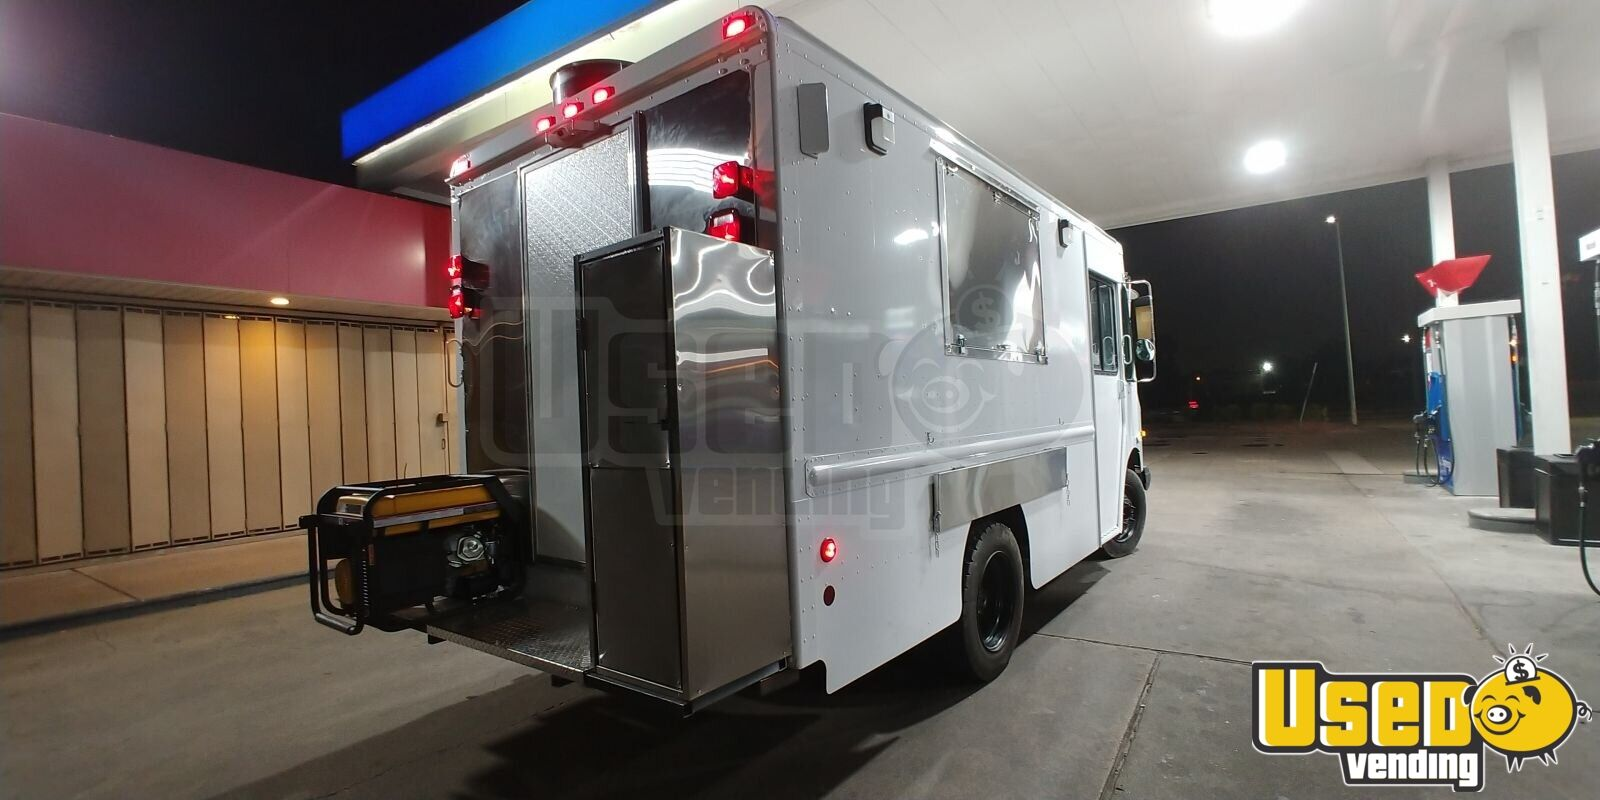 2003 Workhorse P42 Stepvan Air Conditioning Texas Diesel Engine for Sale - 2